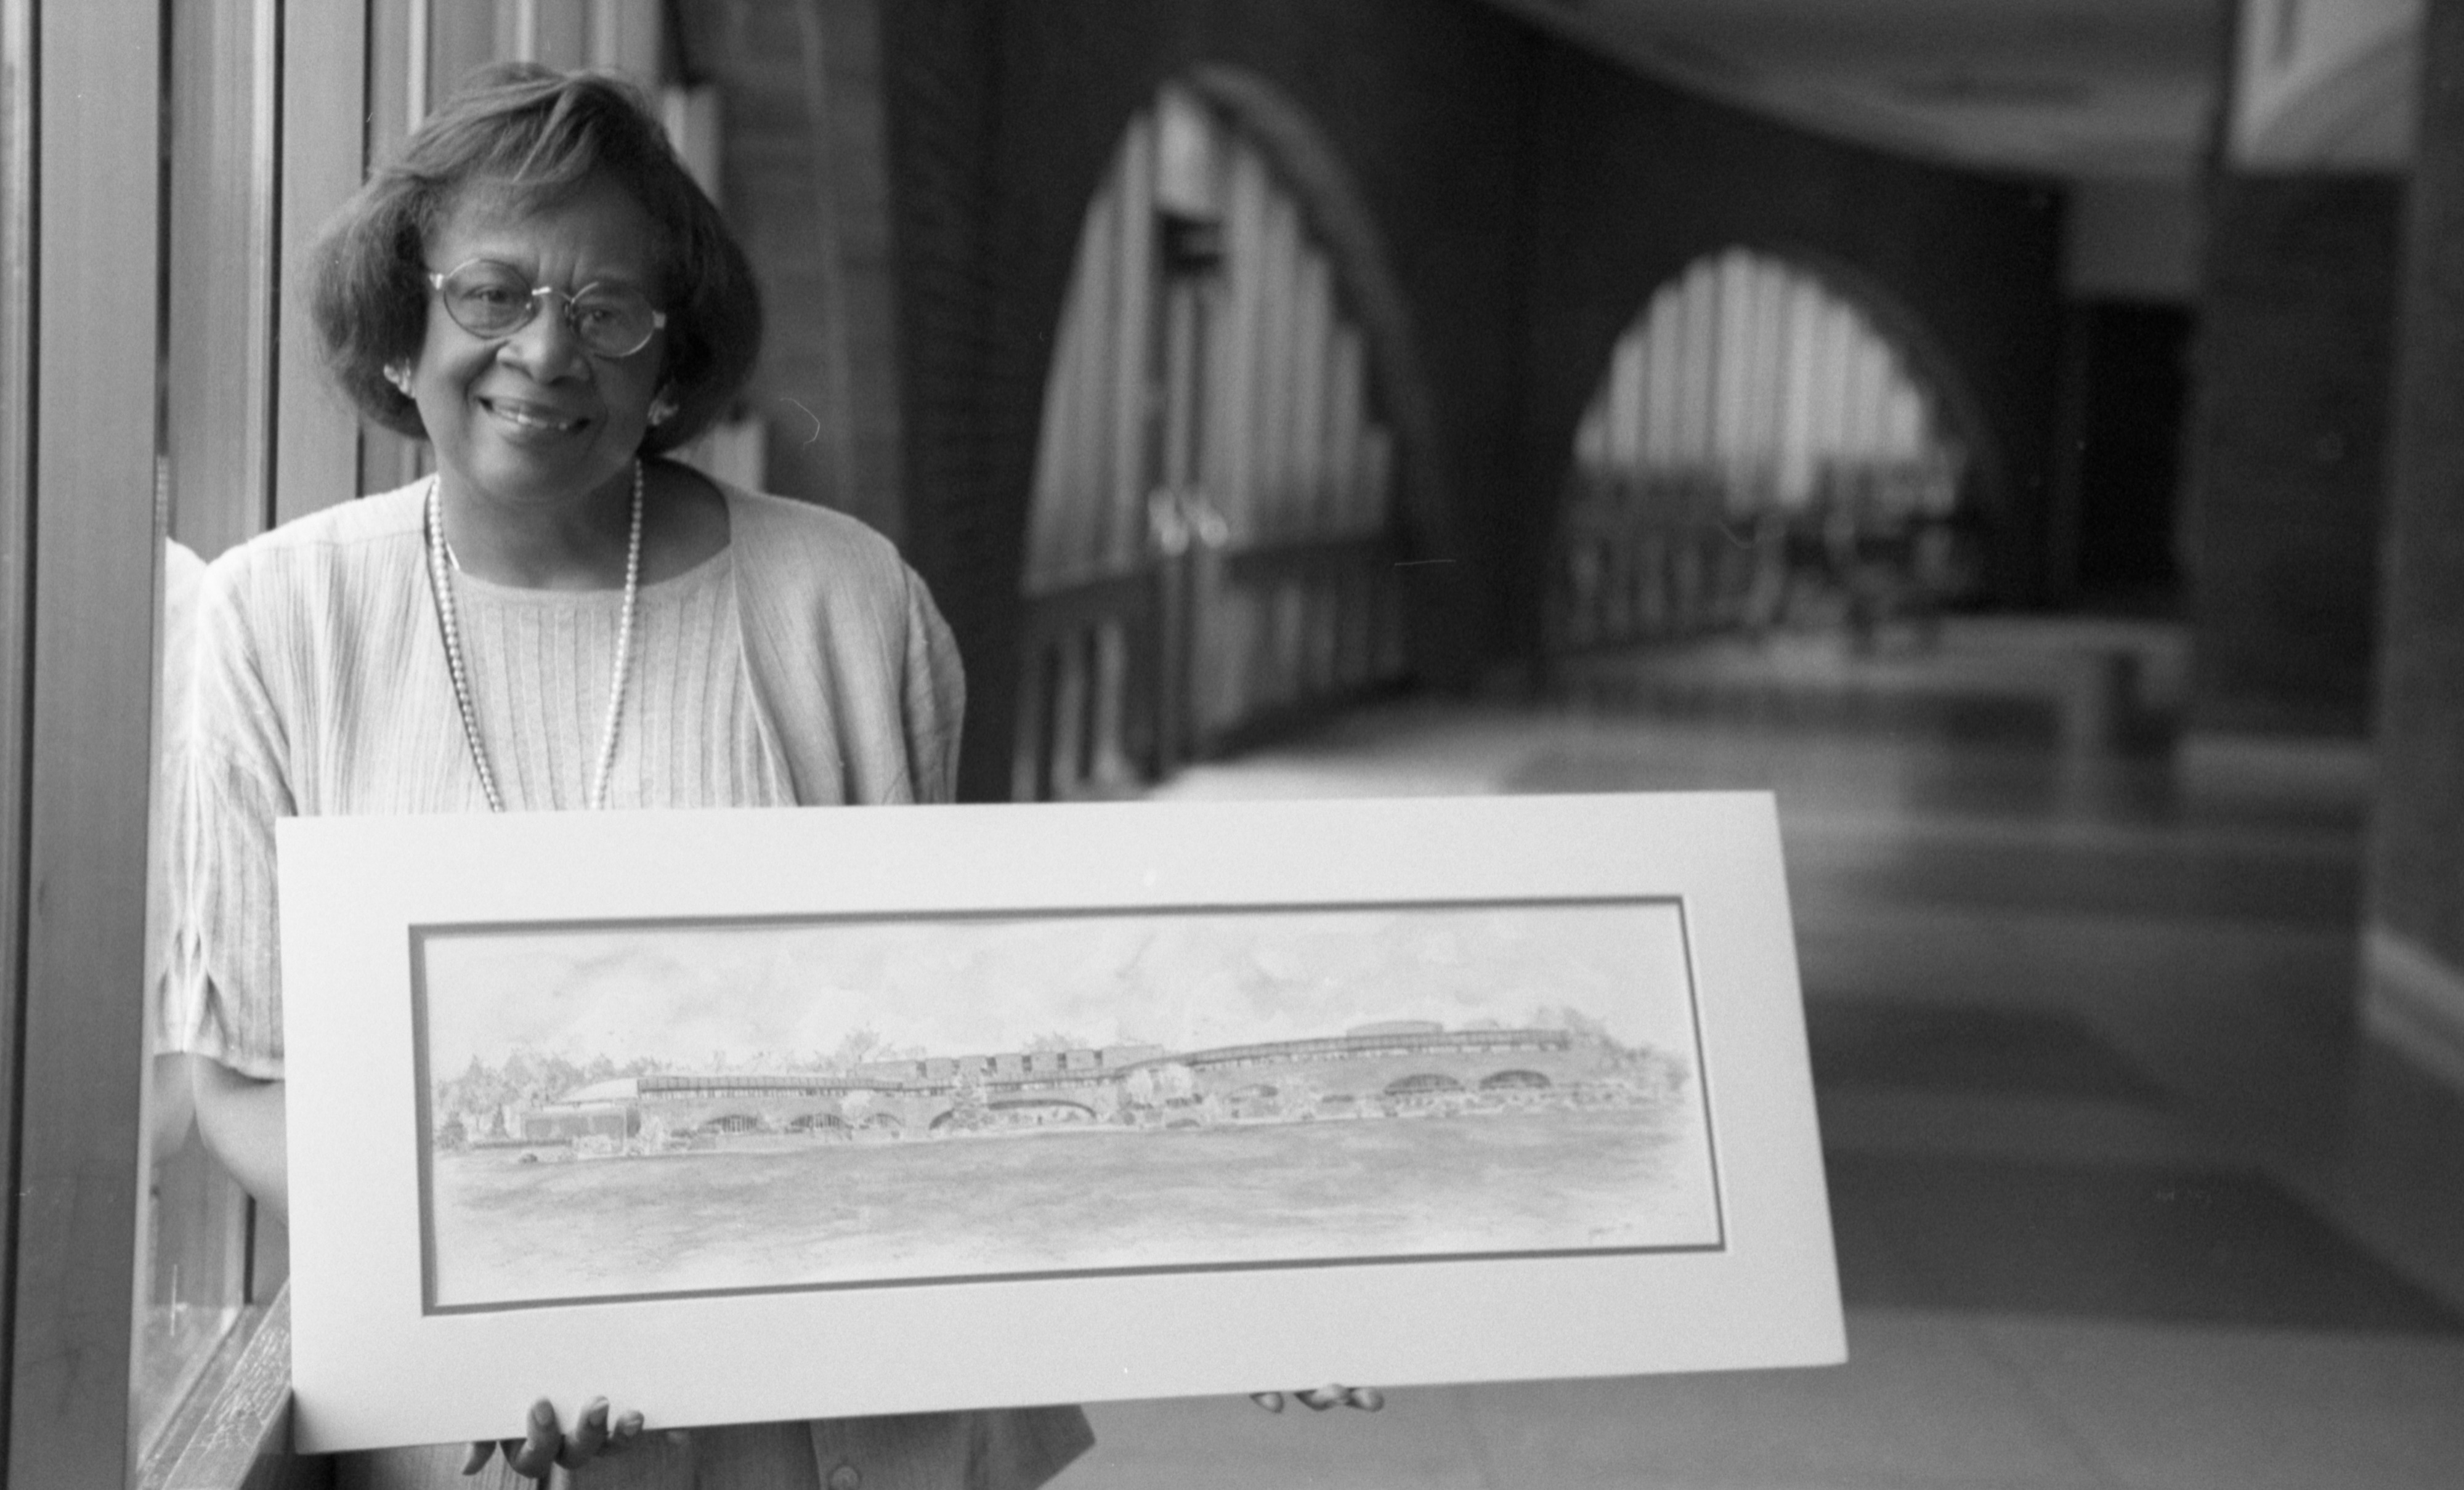 Joetta Mial, Retiring Principal At Huron High School, Holding Picture, July 1994 image